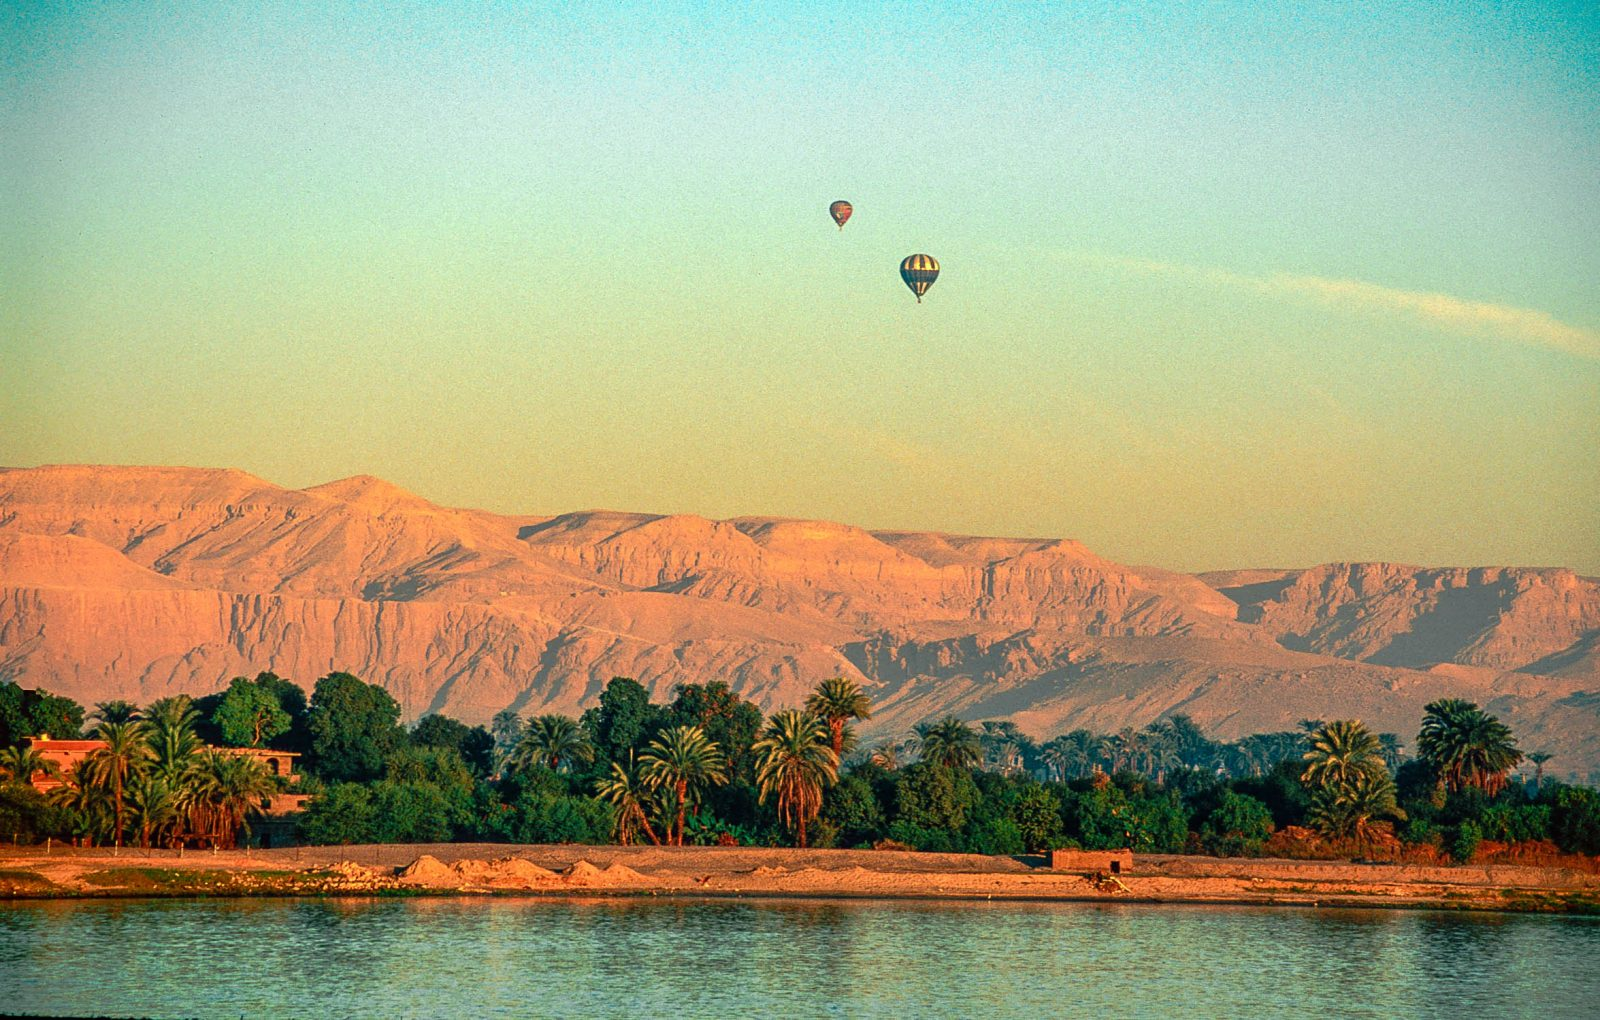 Floating Over the Nile